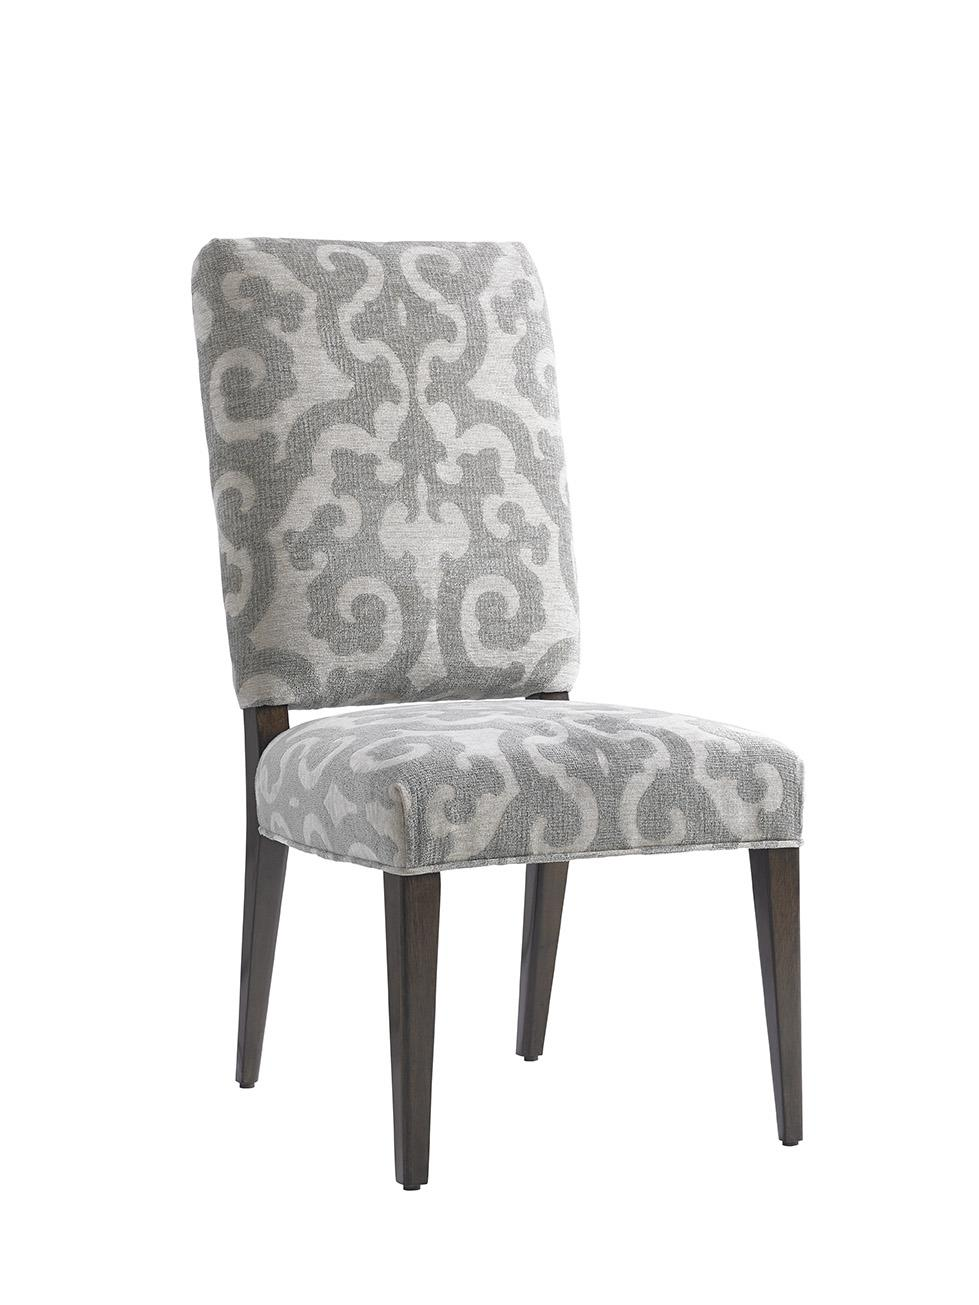 LAUREL CANYON Sierra Side Chair (Custom) by Lexington at Baer's Furniture